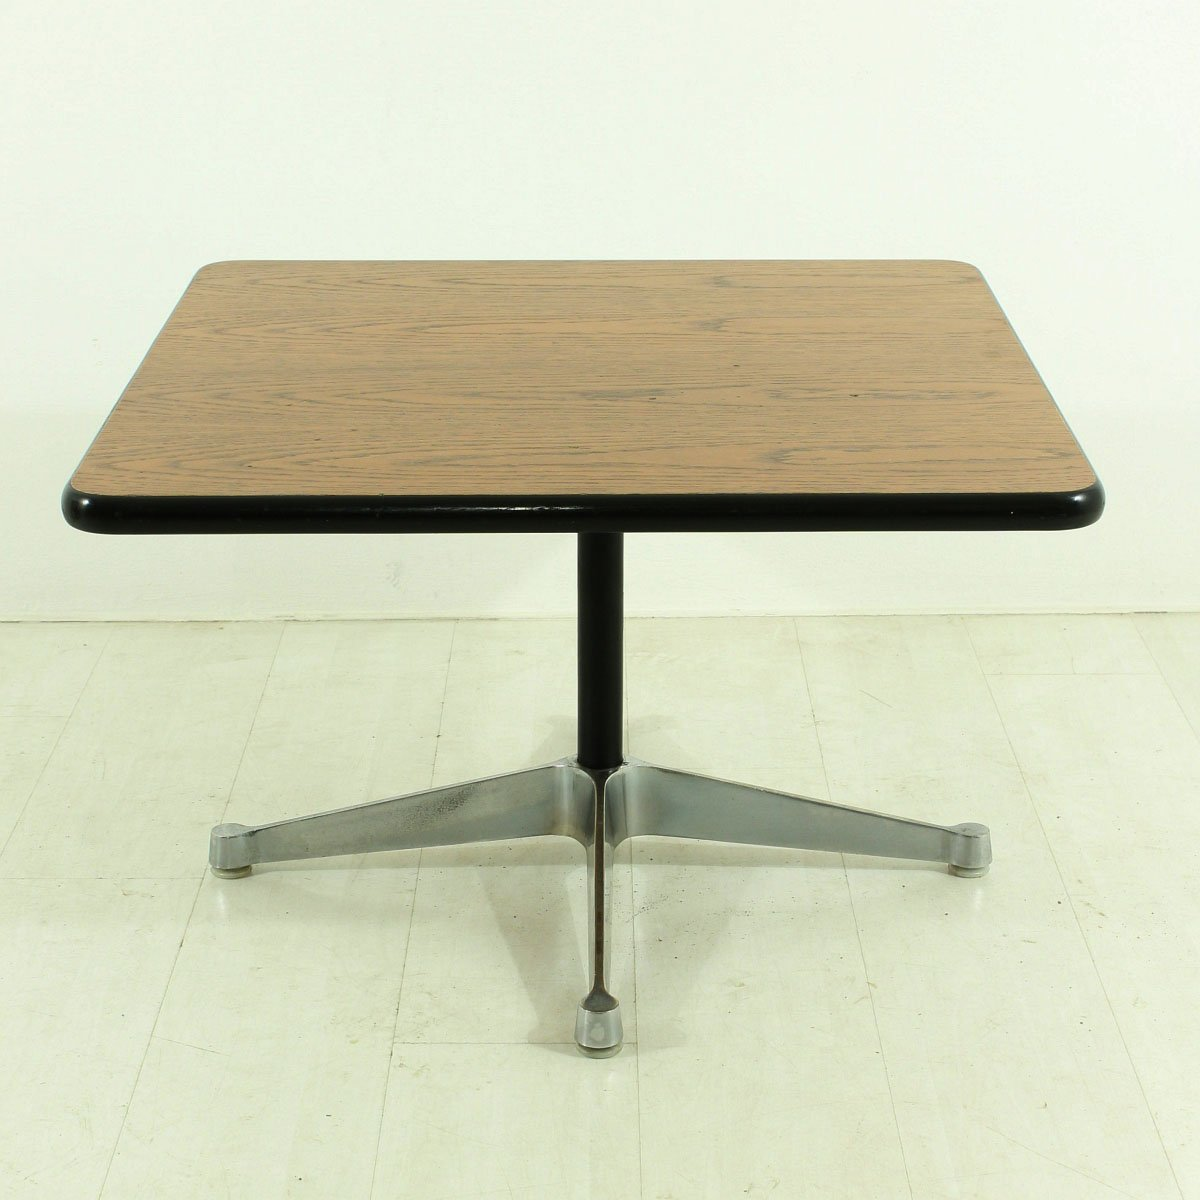 Vintage four star base coffee table by charles ray eames for vitra for sale at pamono Bases for coffee tables